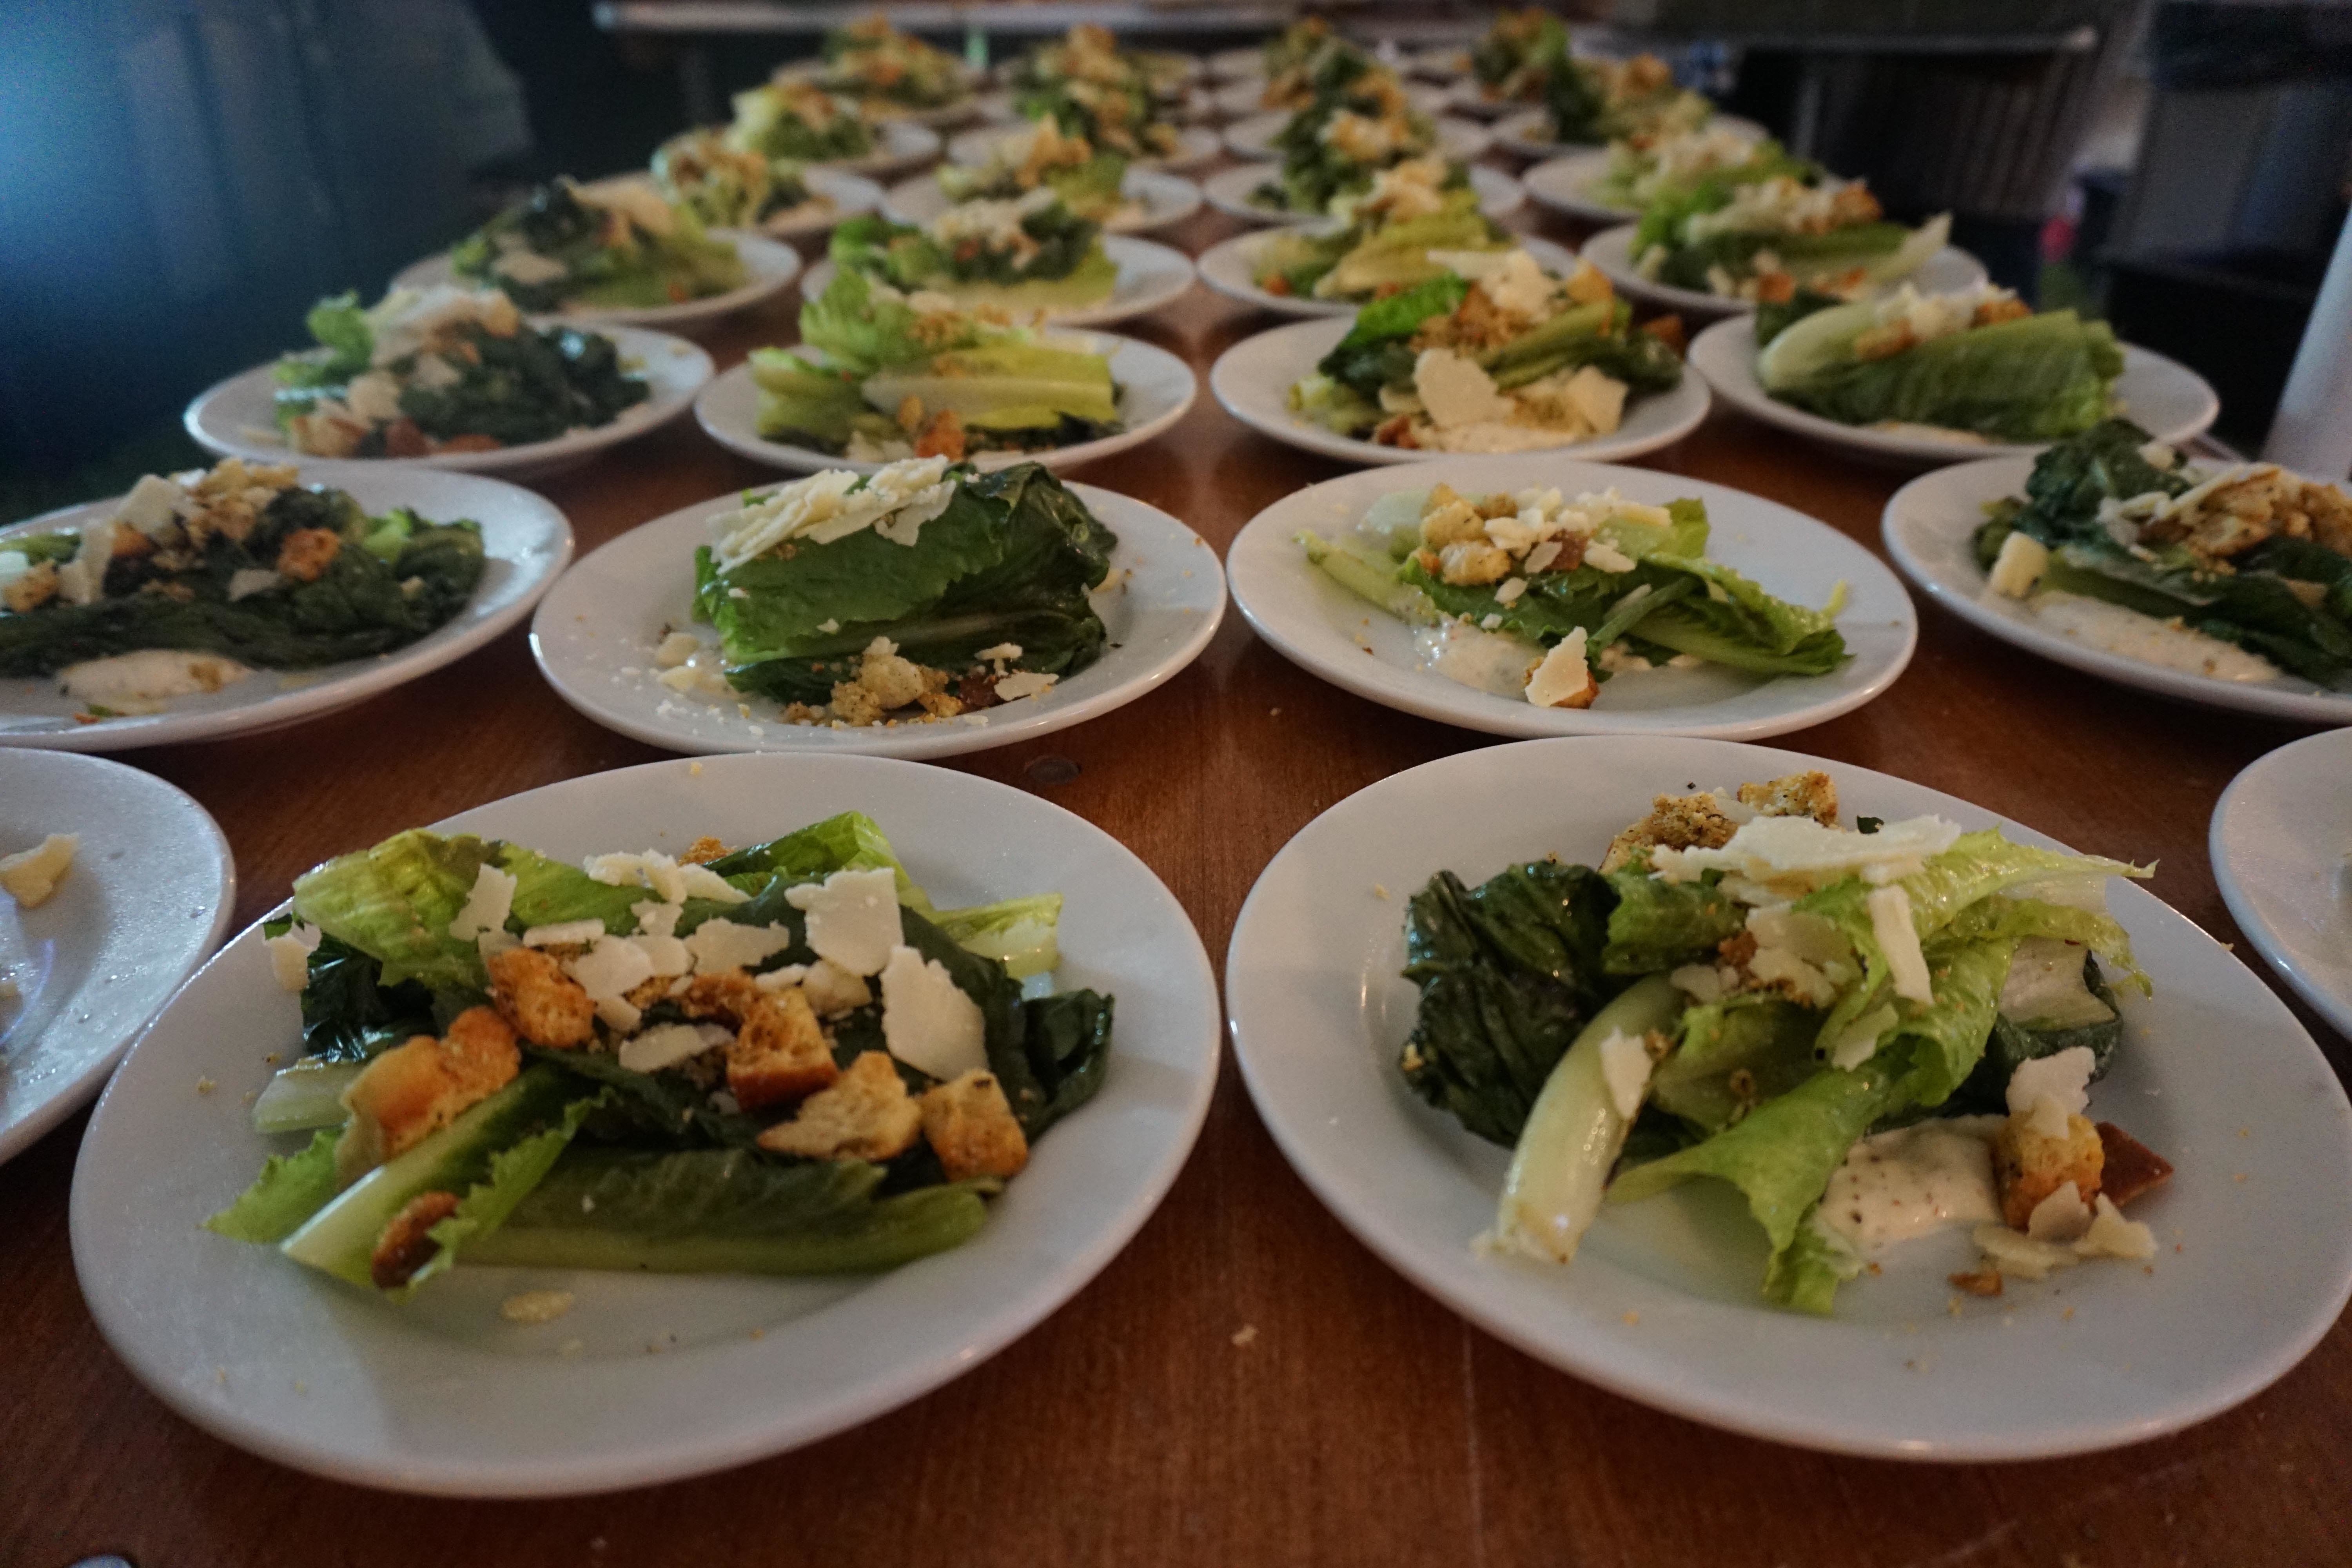 side cesar salads at catering event hosted by Liquid Assets